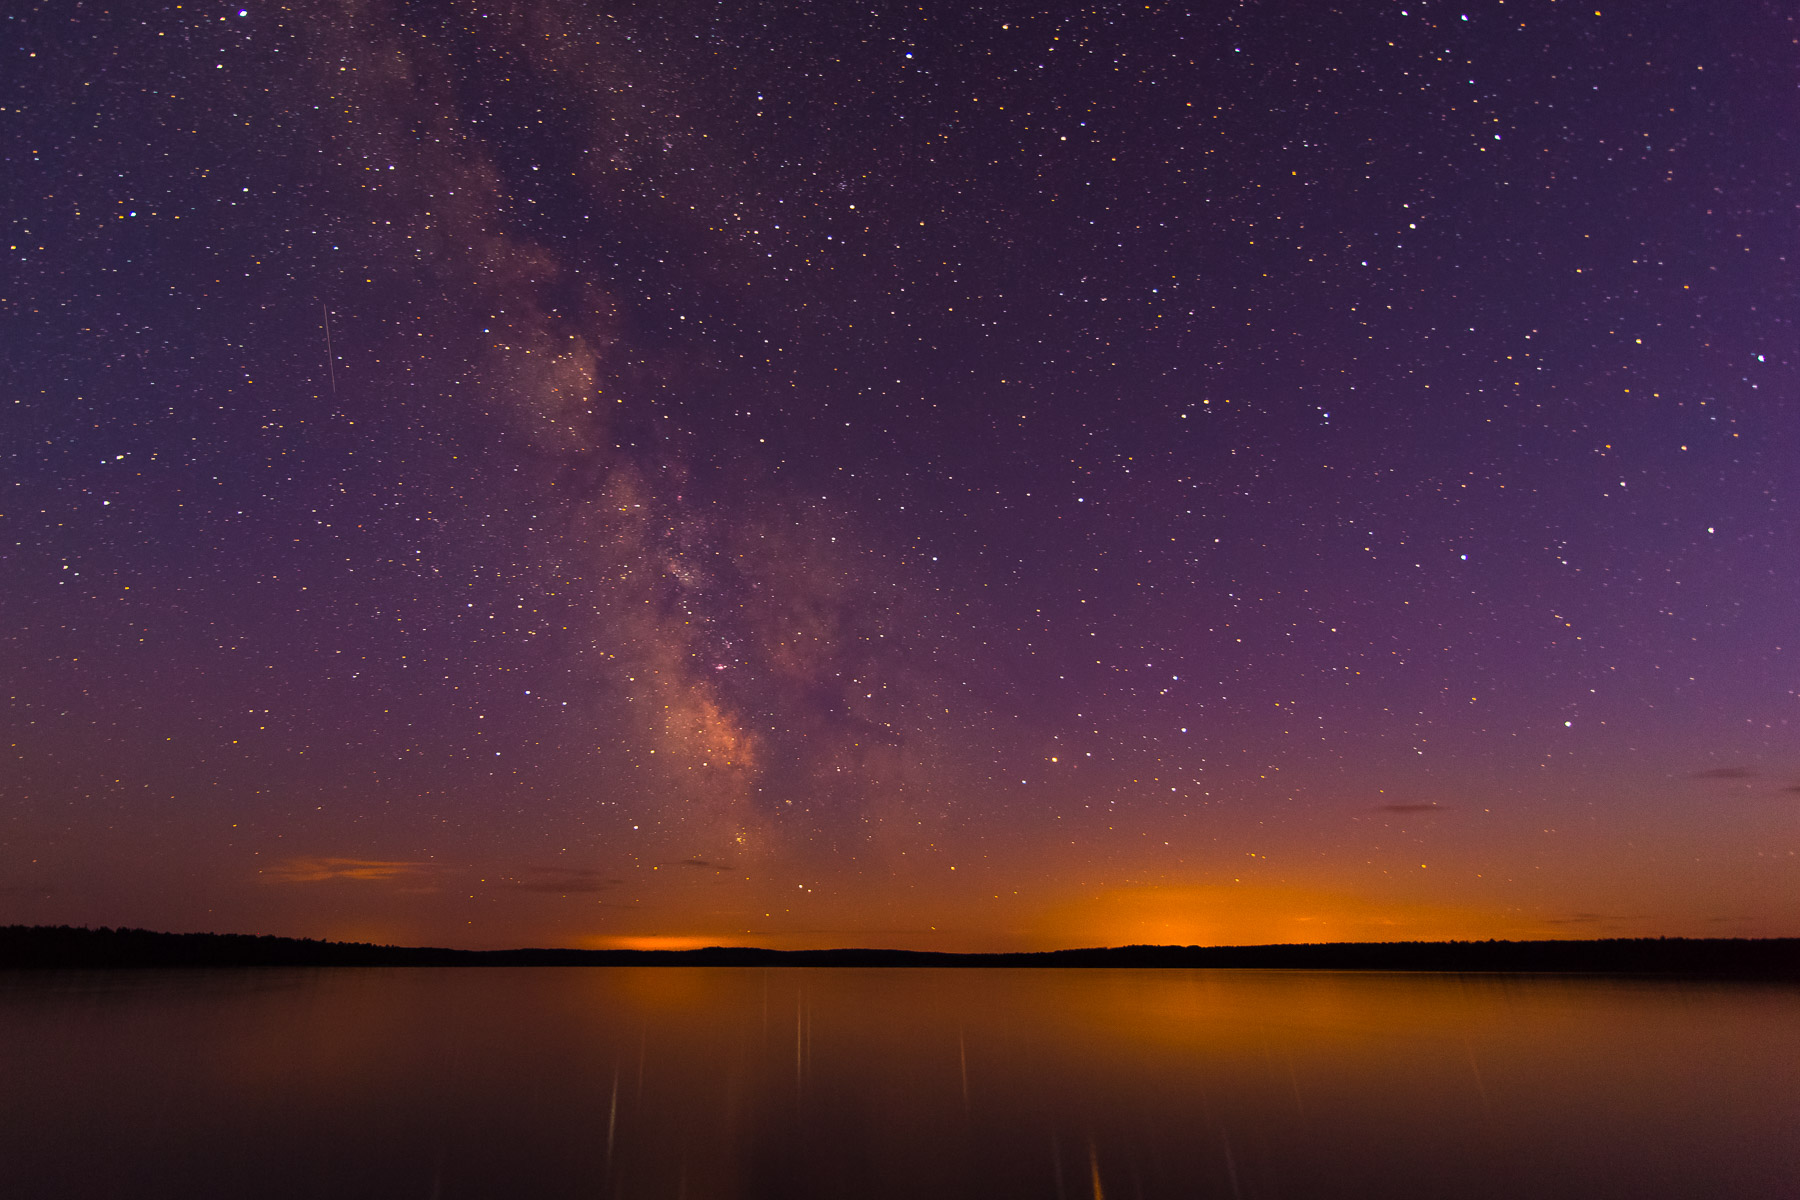 Dusky stars reflecting over the water.